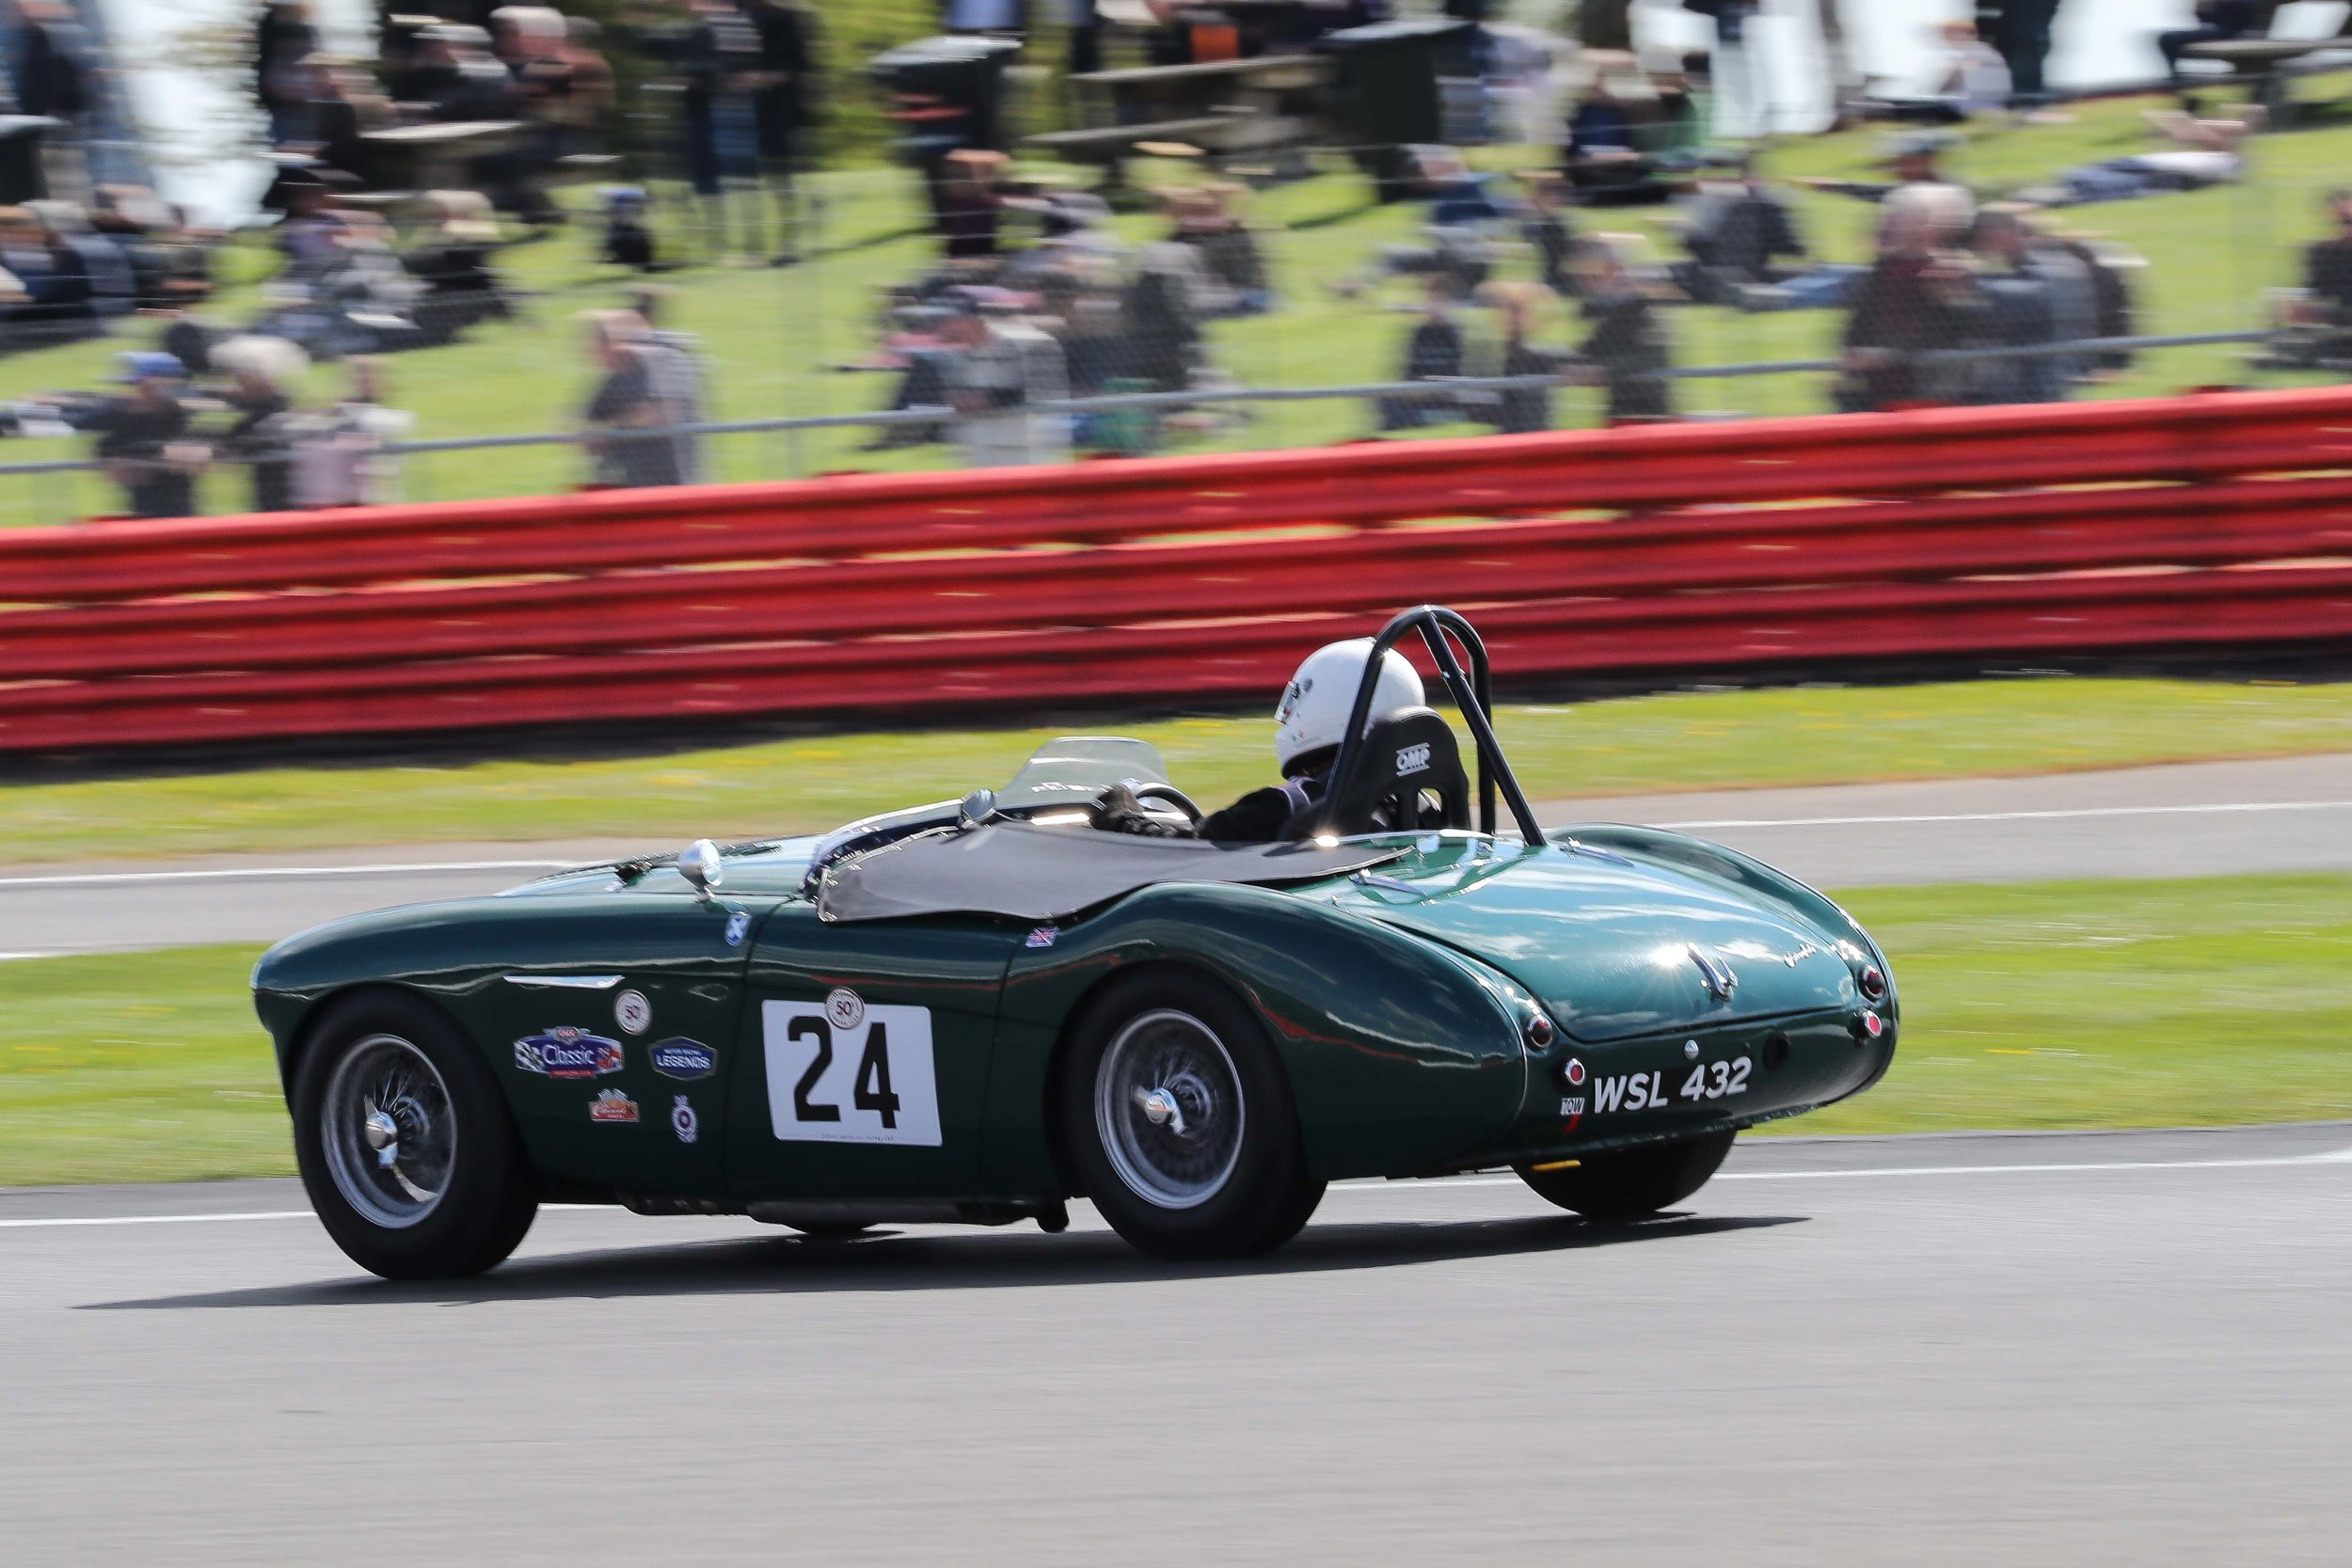 Jim Campbell again displays an elegant and economical driving style in his Austin Healey.  He and Stephen Bond in the Lister Bristol were rarely far apart and Jim finished just 2 seconds down after 30 minutes of racing.                            Photo - Richard Styles